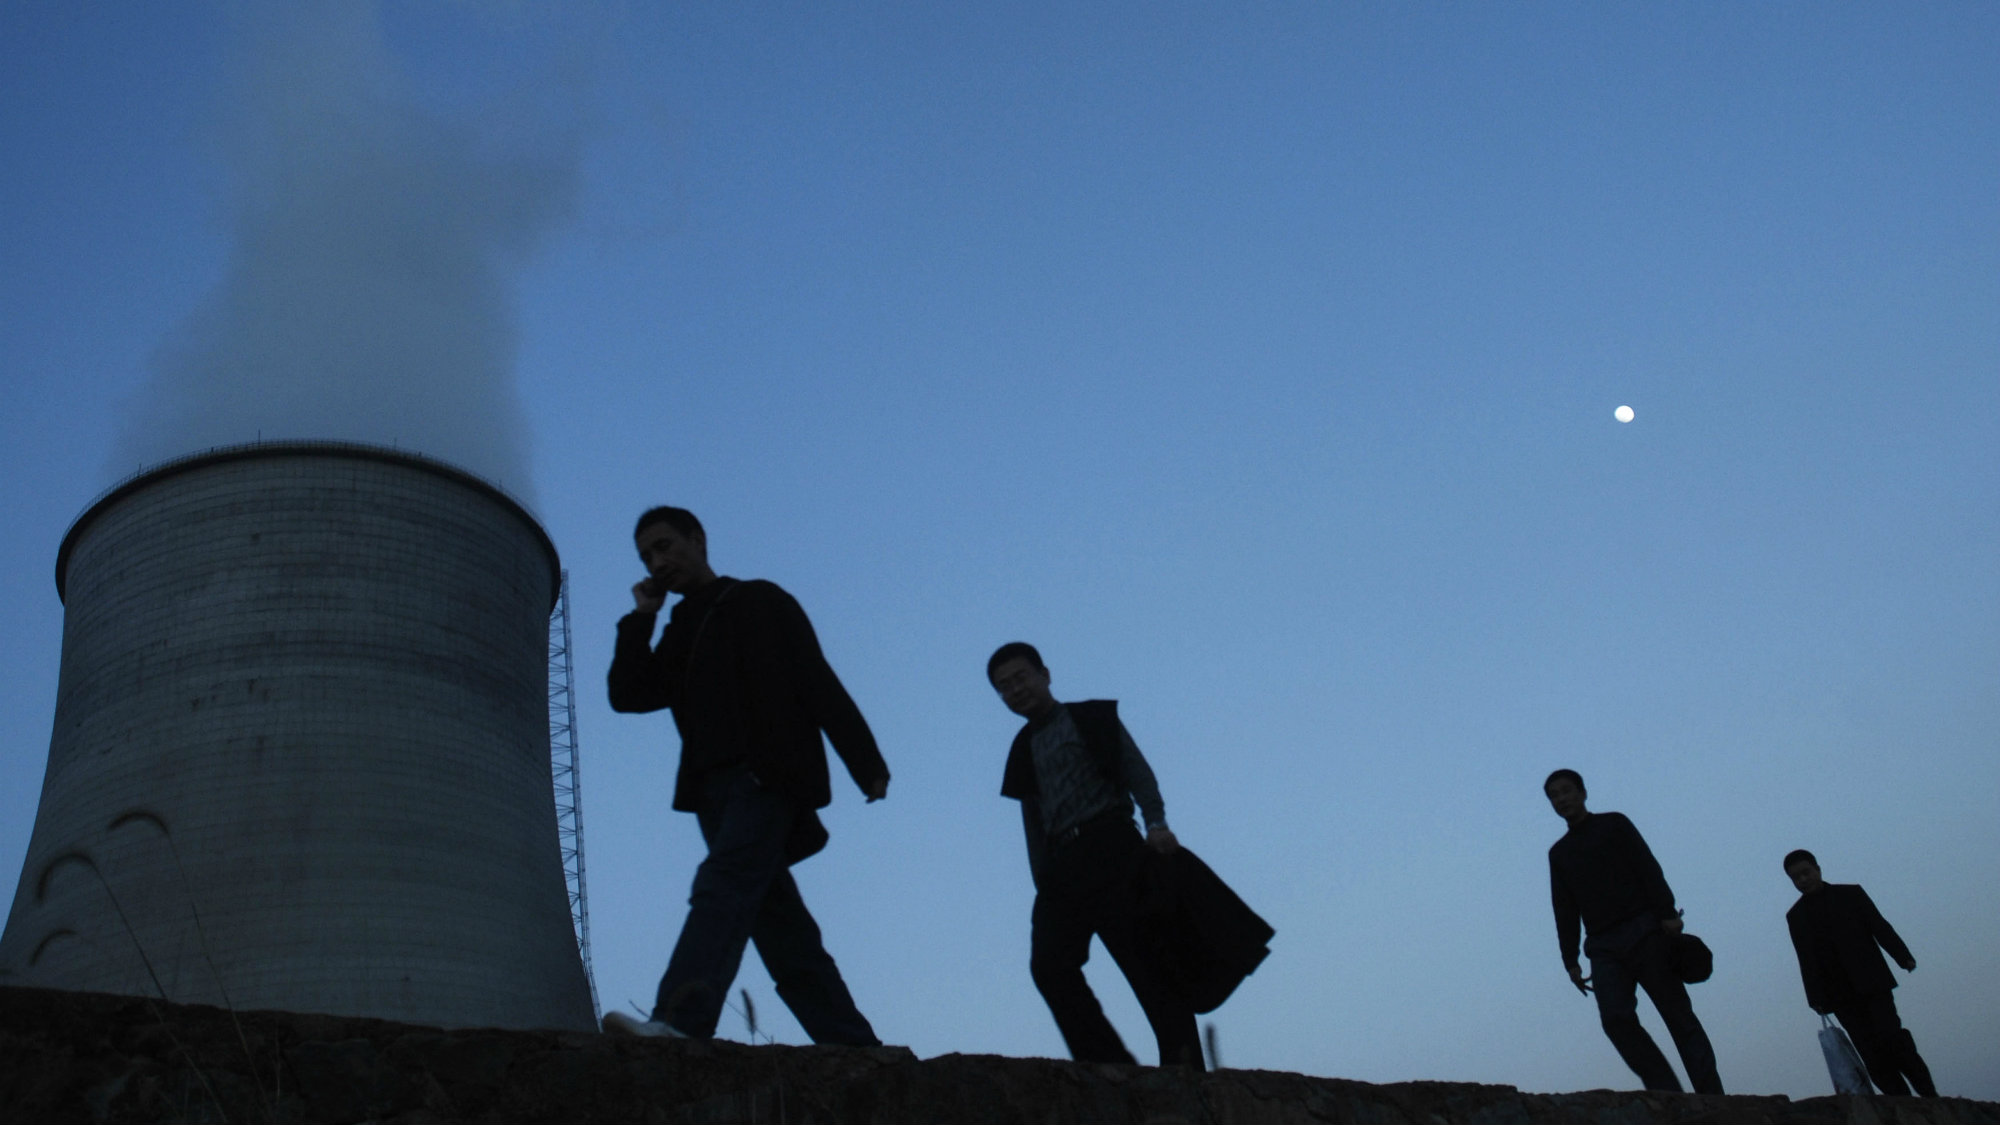 People walk on a street past a power plant's cooling tower in China.